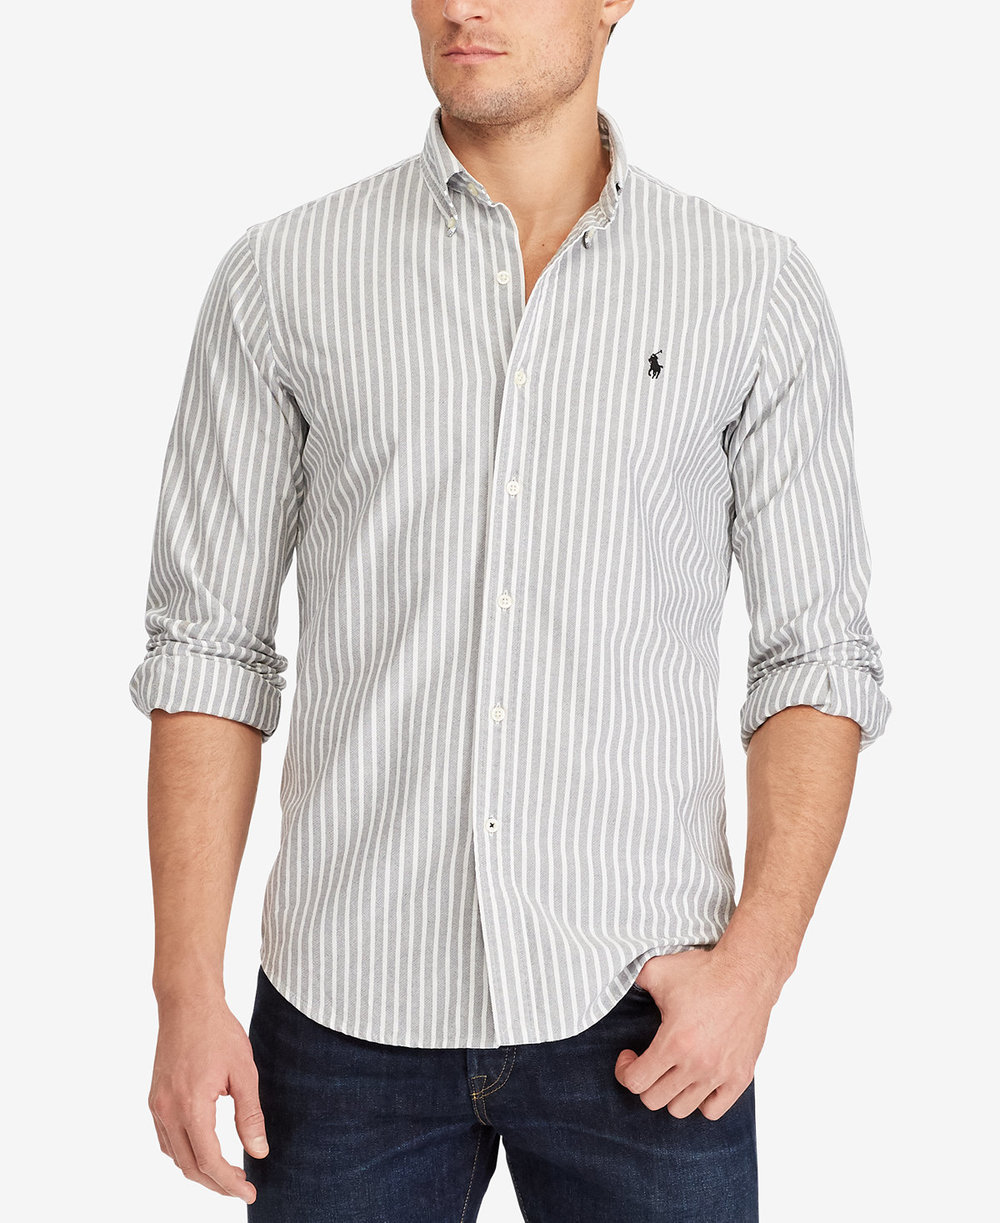 ralph lauren dress shirt.jpeg